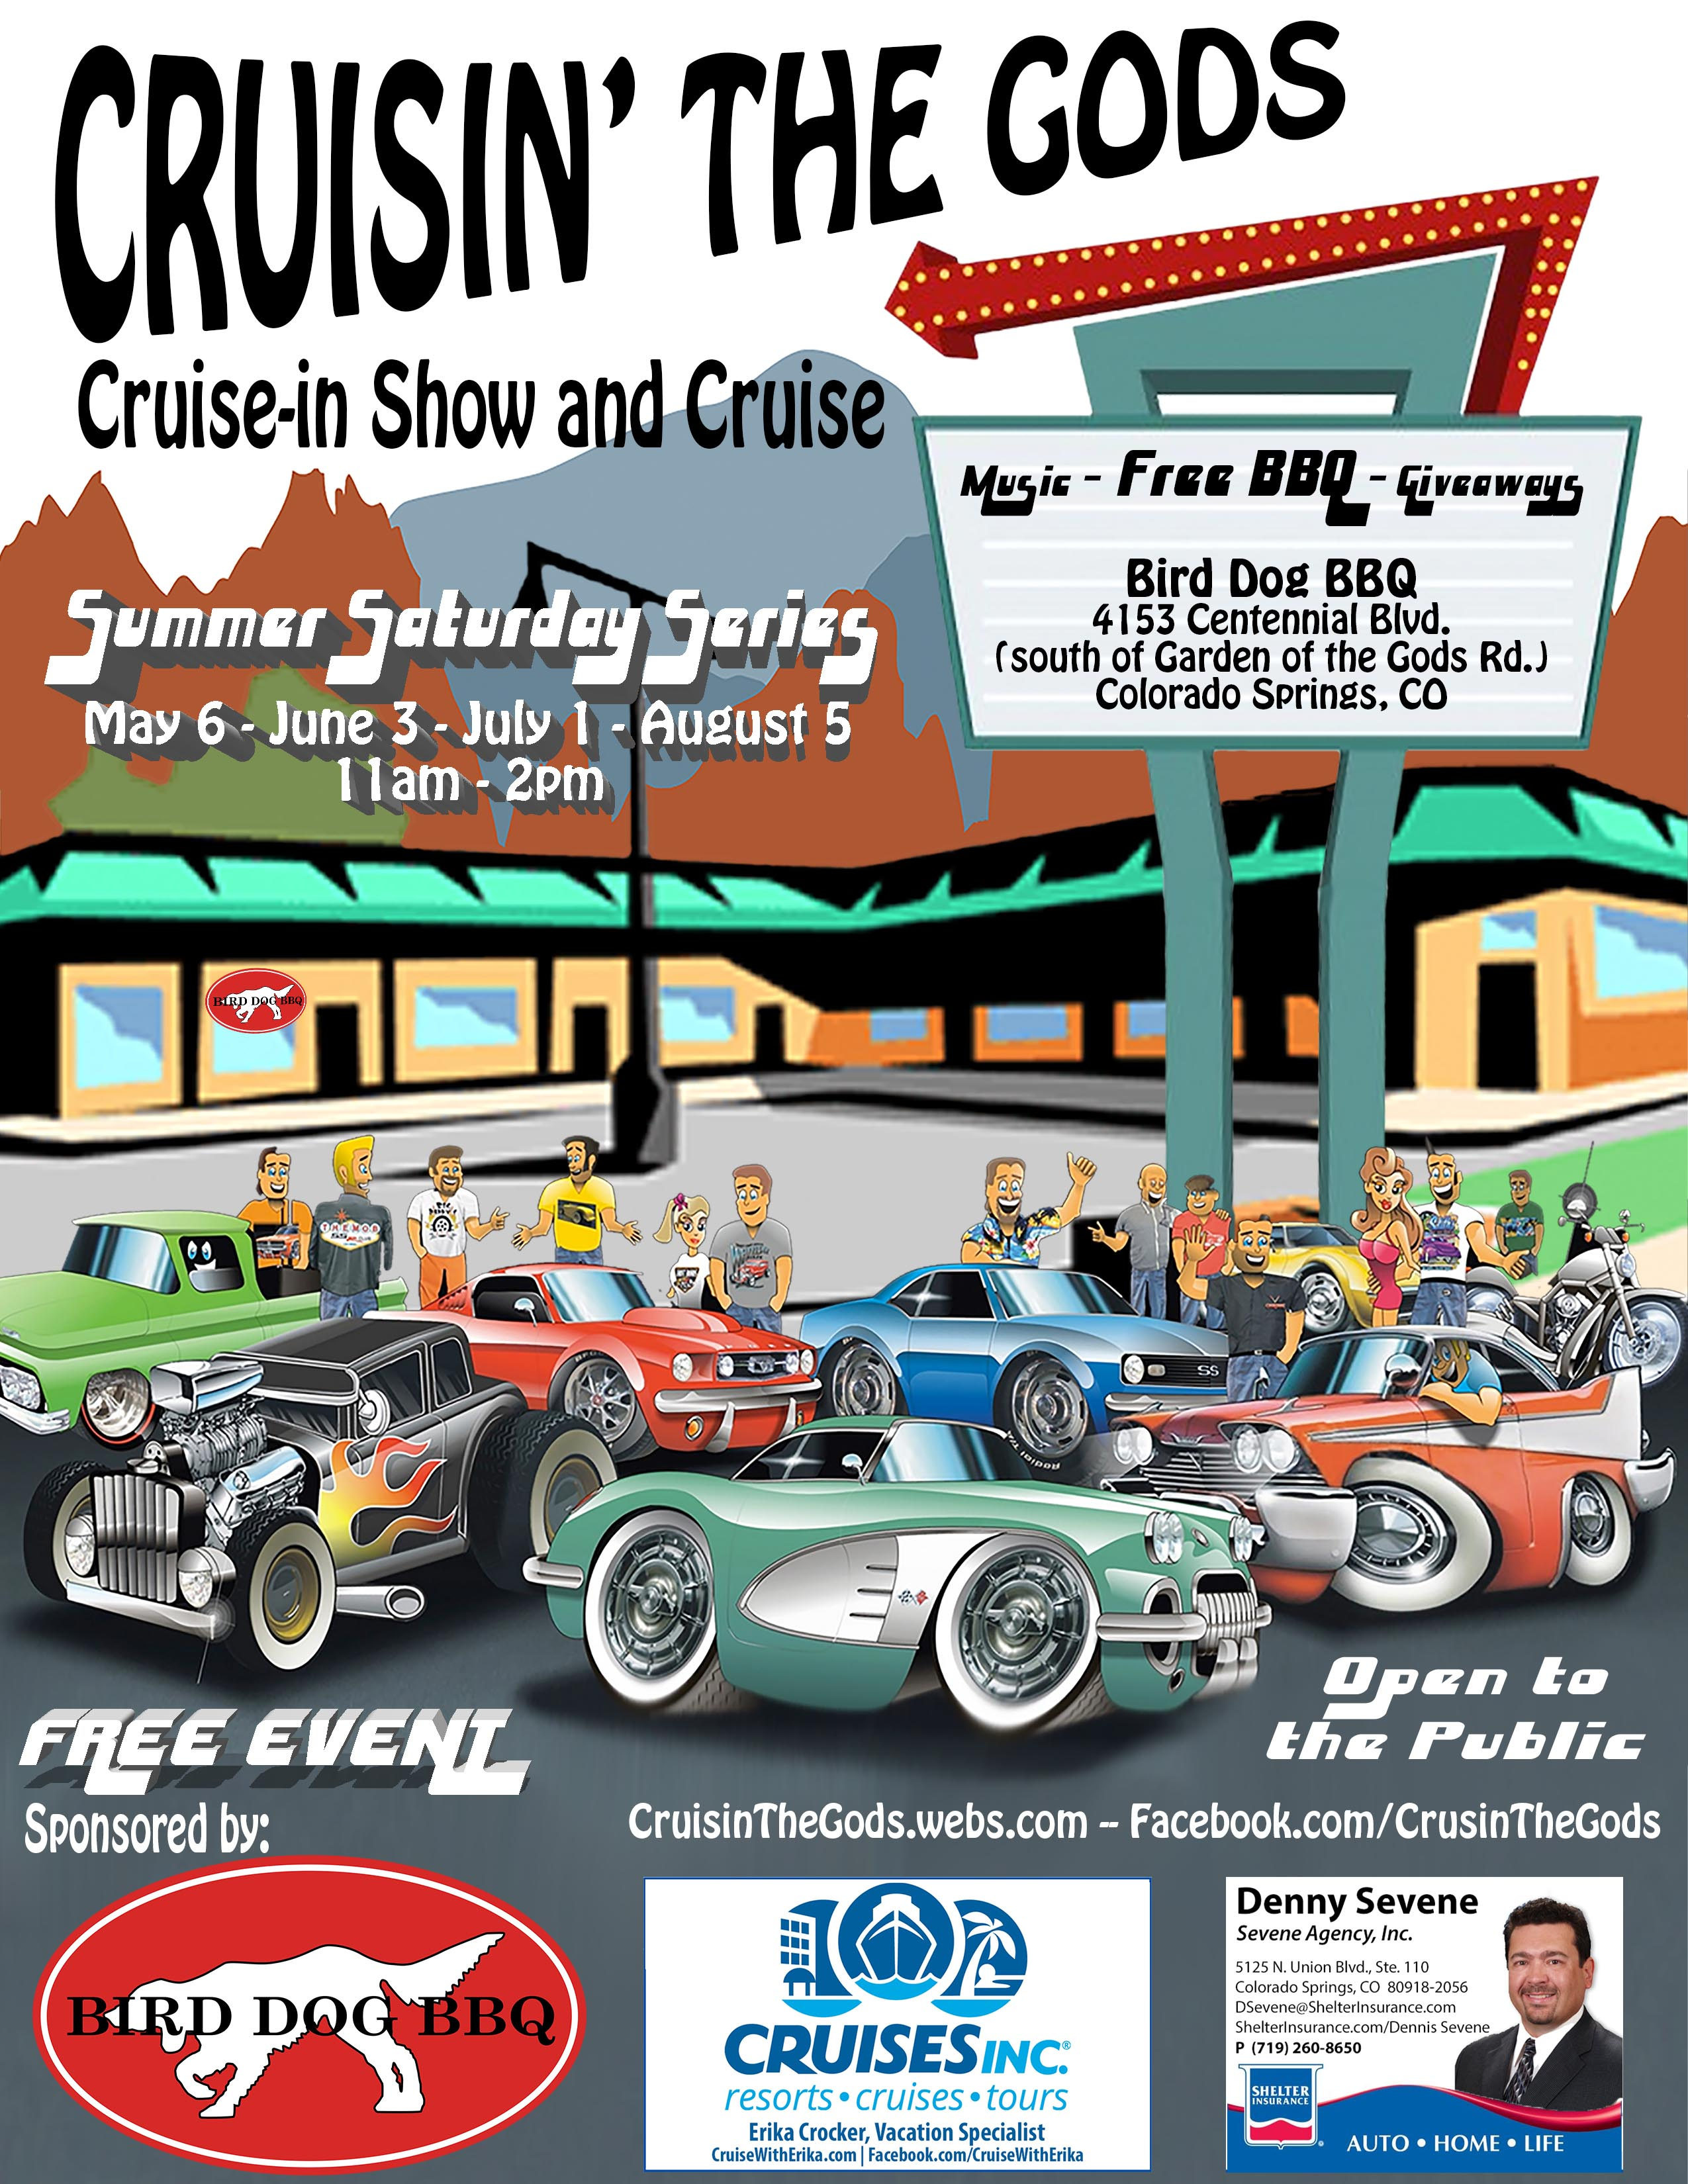 Cruisin The Gods Car Show And Cruise Presented By Bird Dog BBQ - Car show schedule